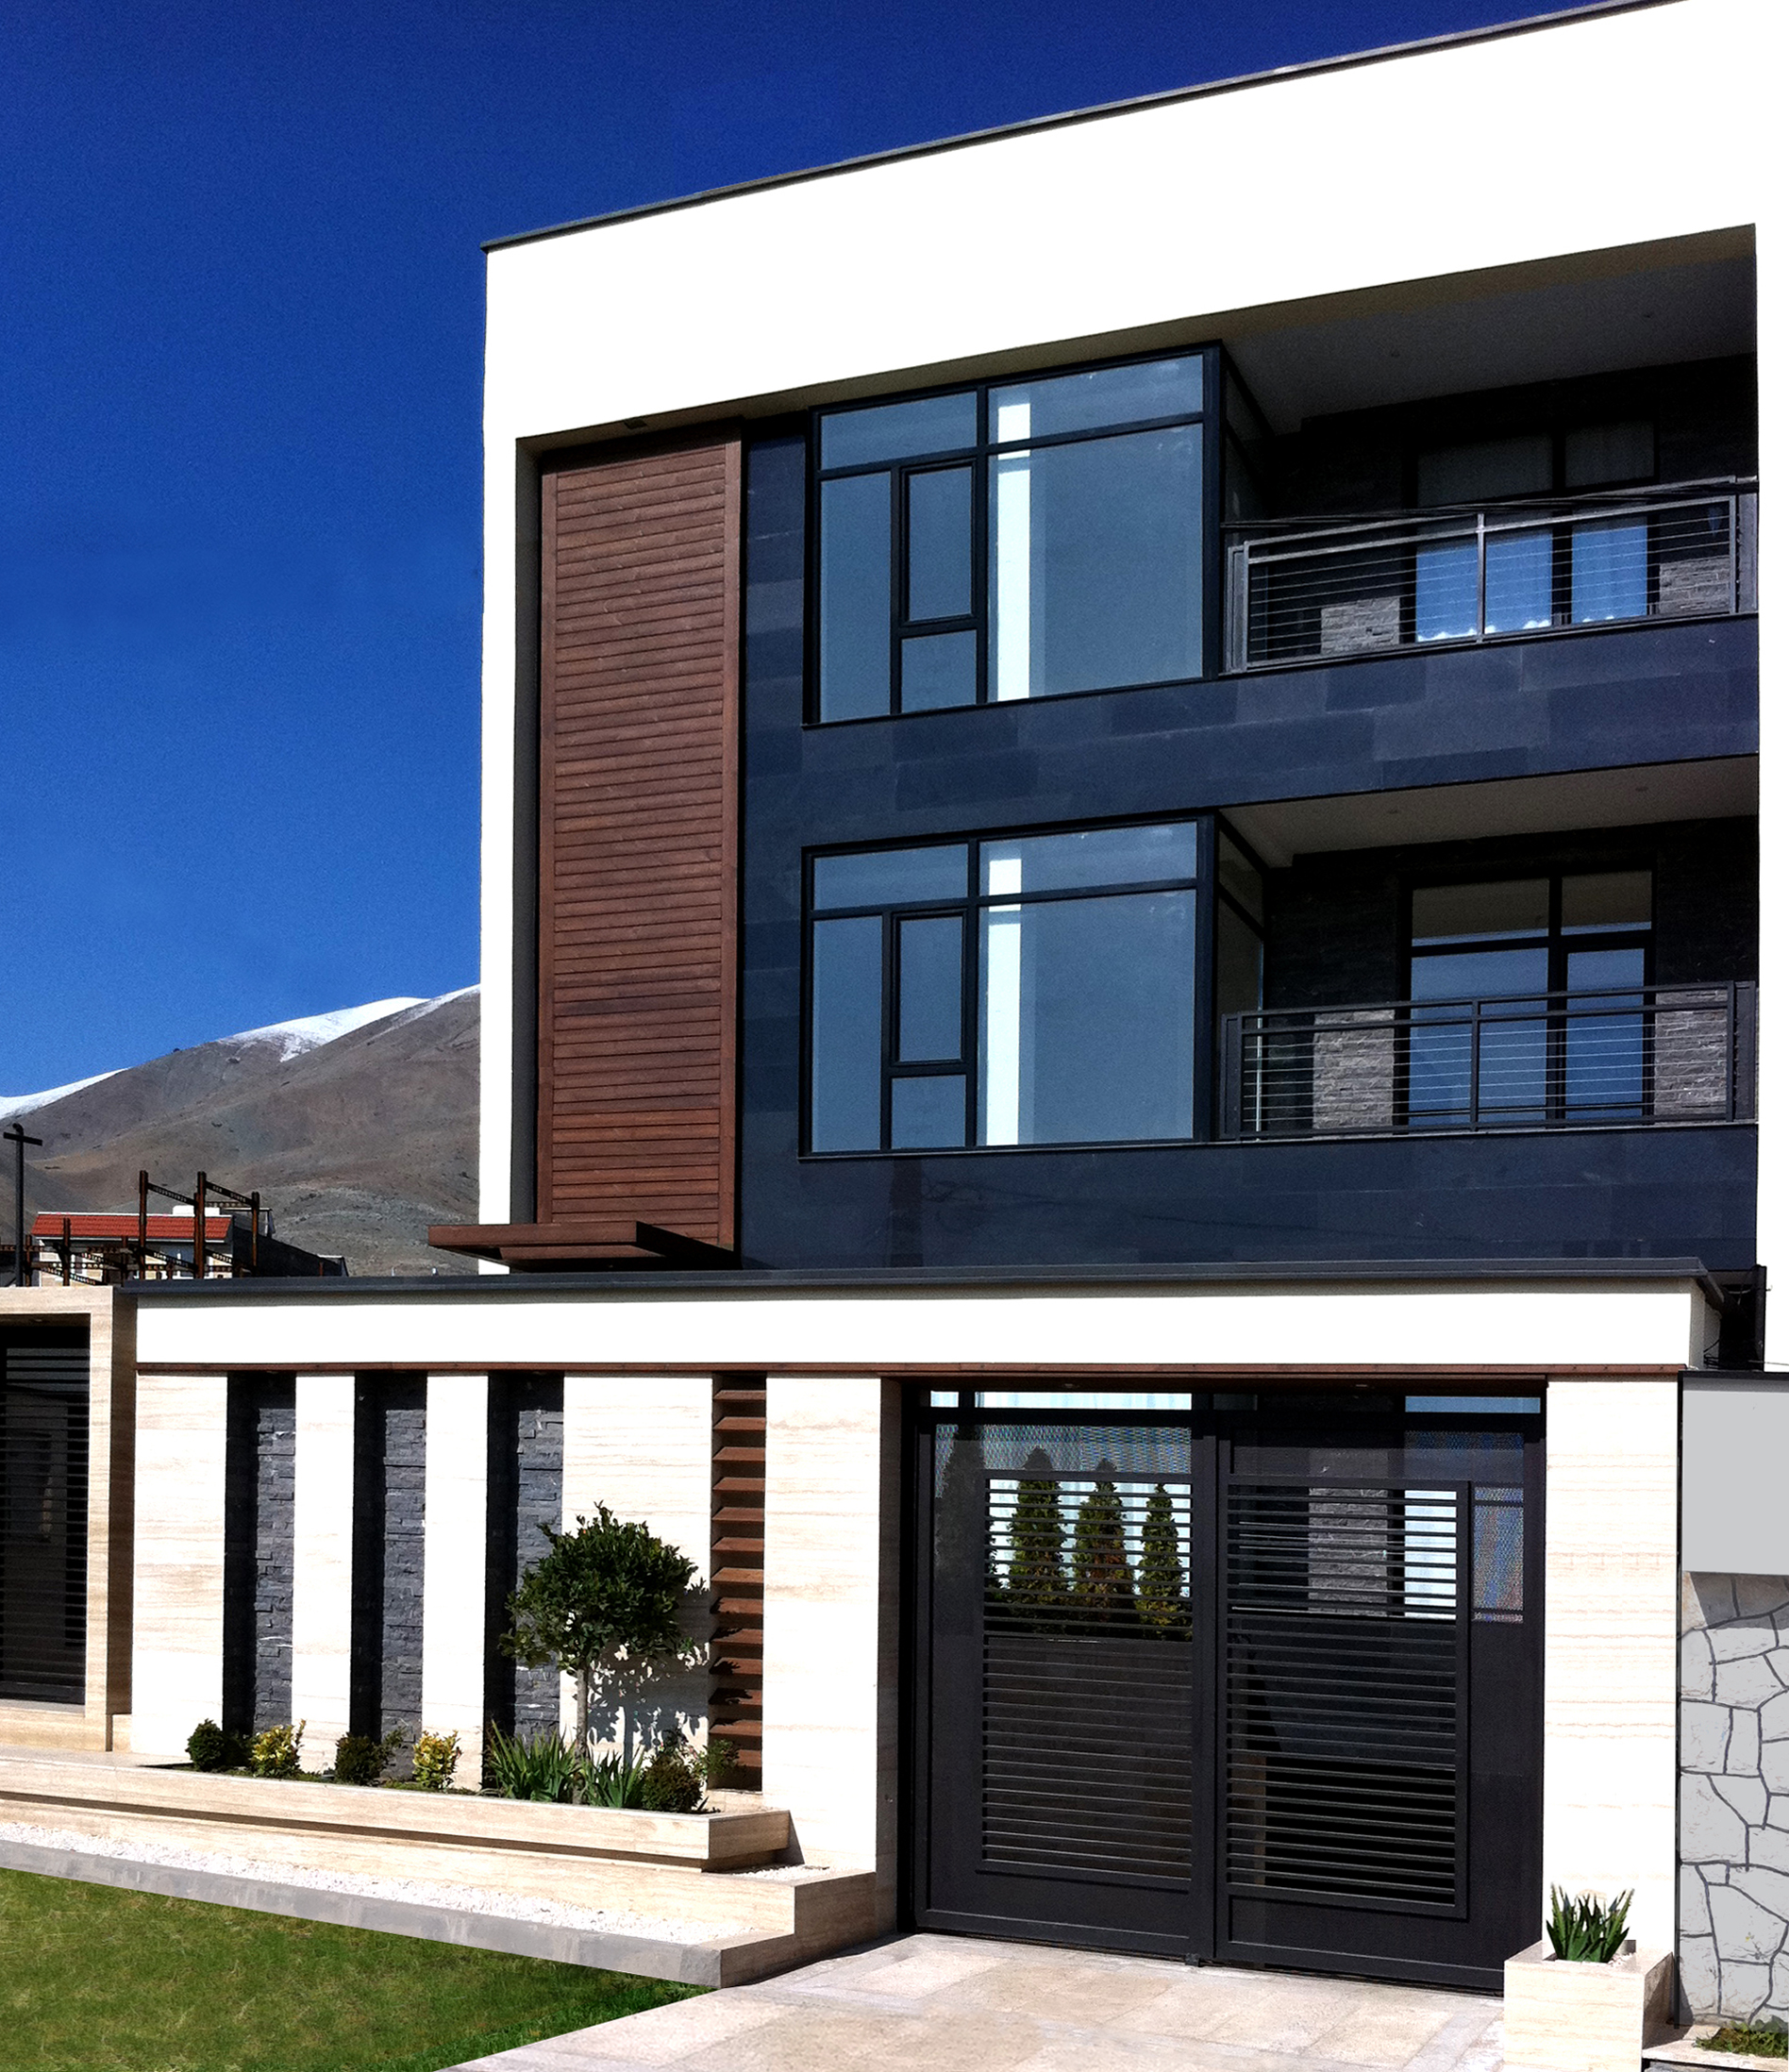 NEW CONSTRUCTION - SEMI-DETACHED MULTI-FAMILY RESIDENTIAL DESIGN  SCOPE OF WORK: PRELIMINARY DESIGN, DESIGN DEVELOPMENT, CONSTRUCTION DOCUMENTS, CONSTRUCTION ADMINISTRATION, LIGHTING DESIGN, FINISH AND FIXTURE SELECTIONS AND CUSTOM METAL/MILLWORK DESIGN